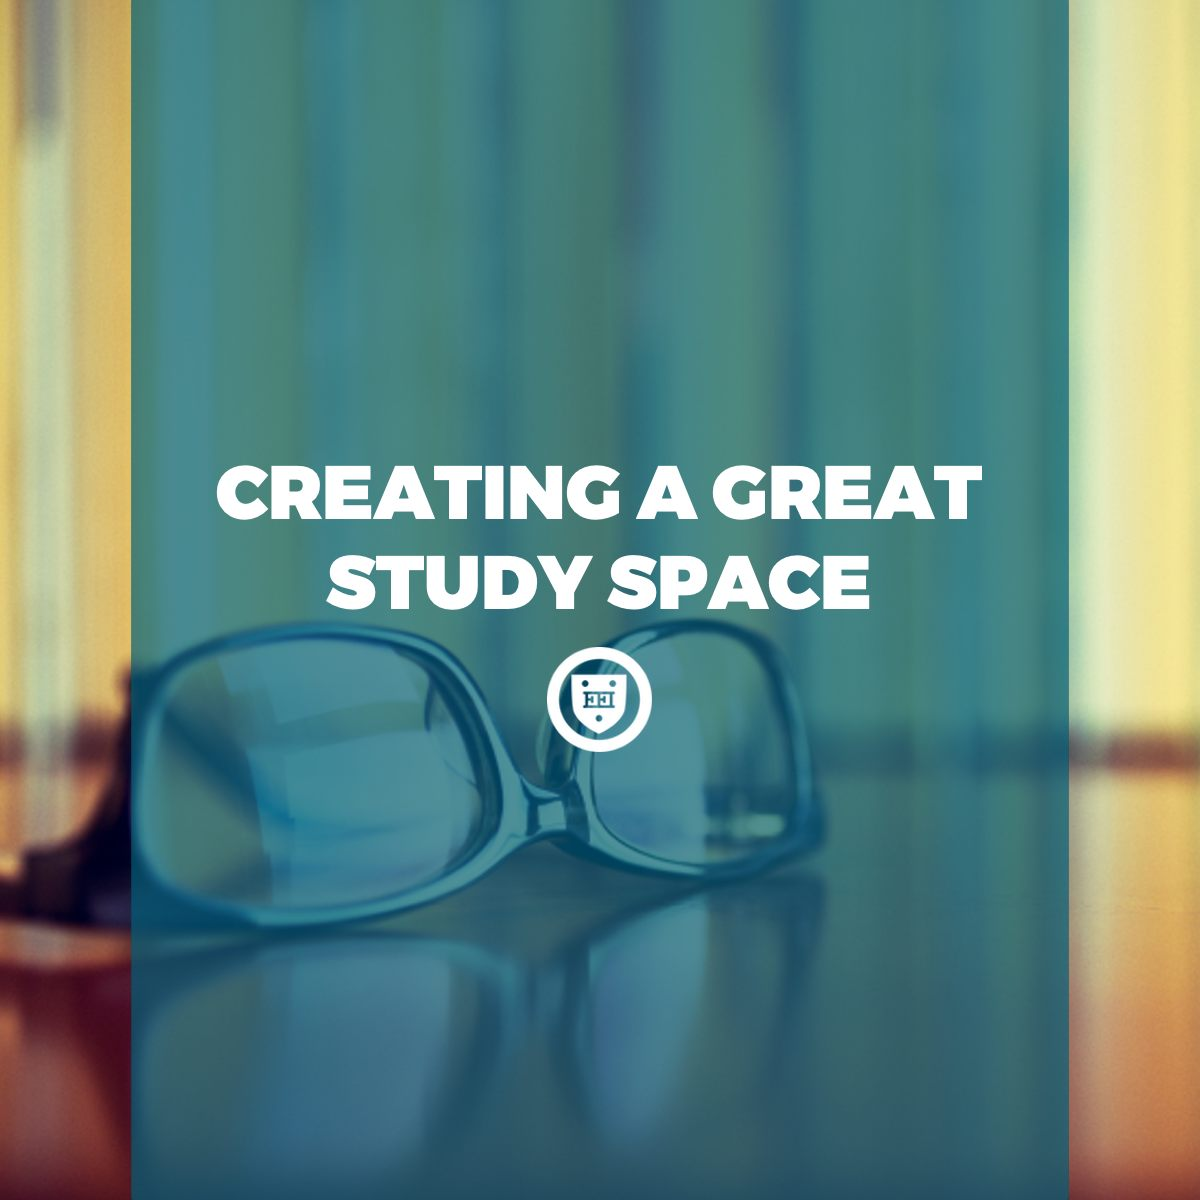 Creating a Great Study Space